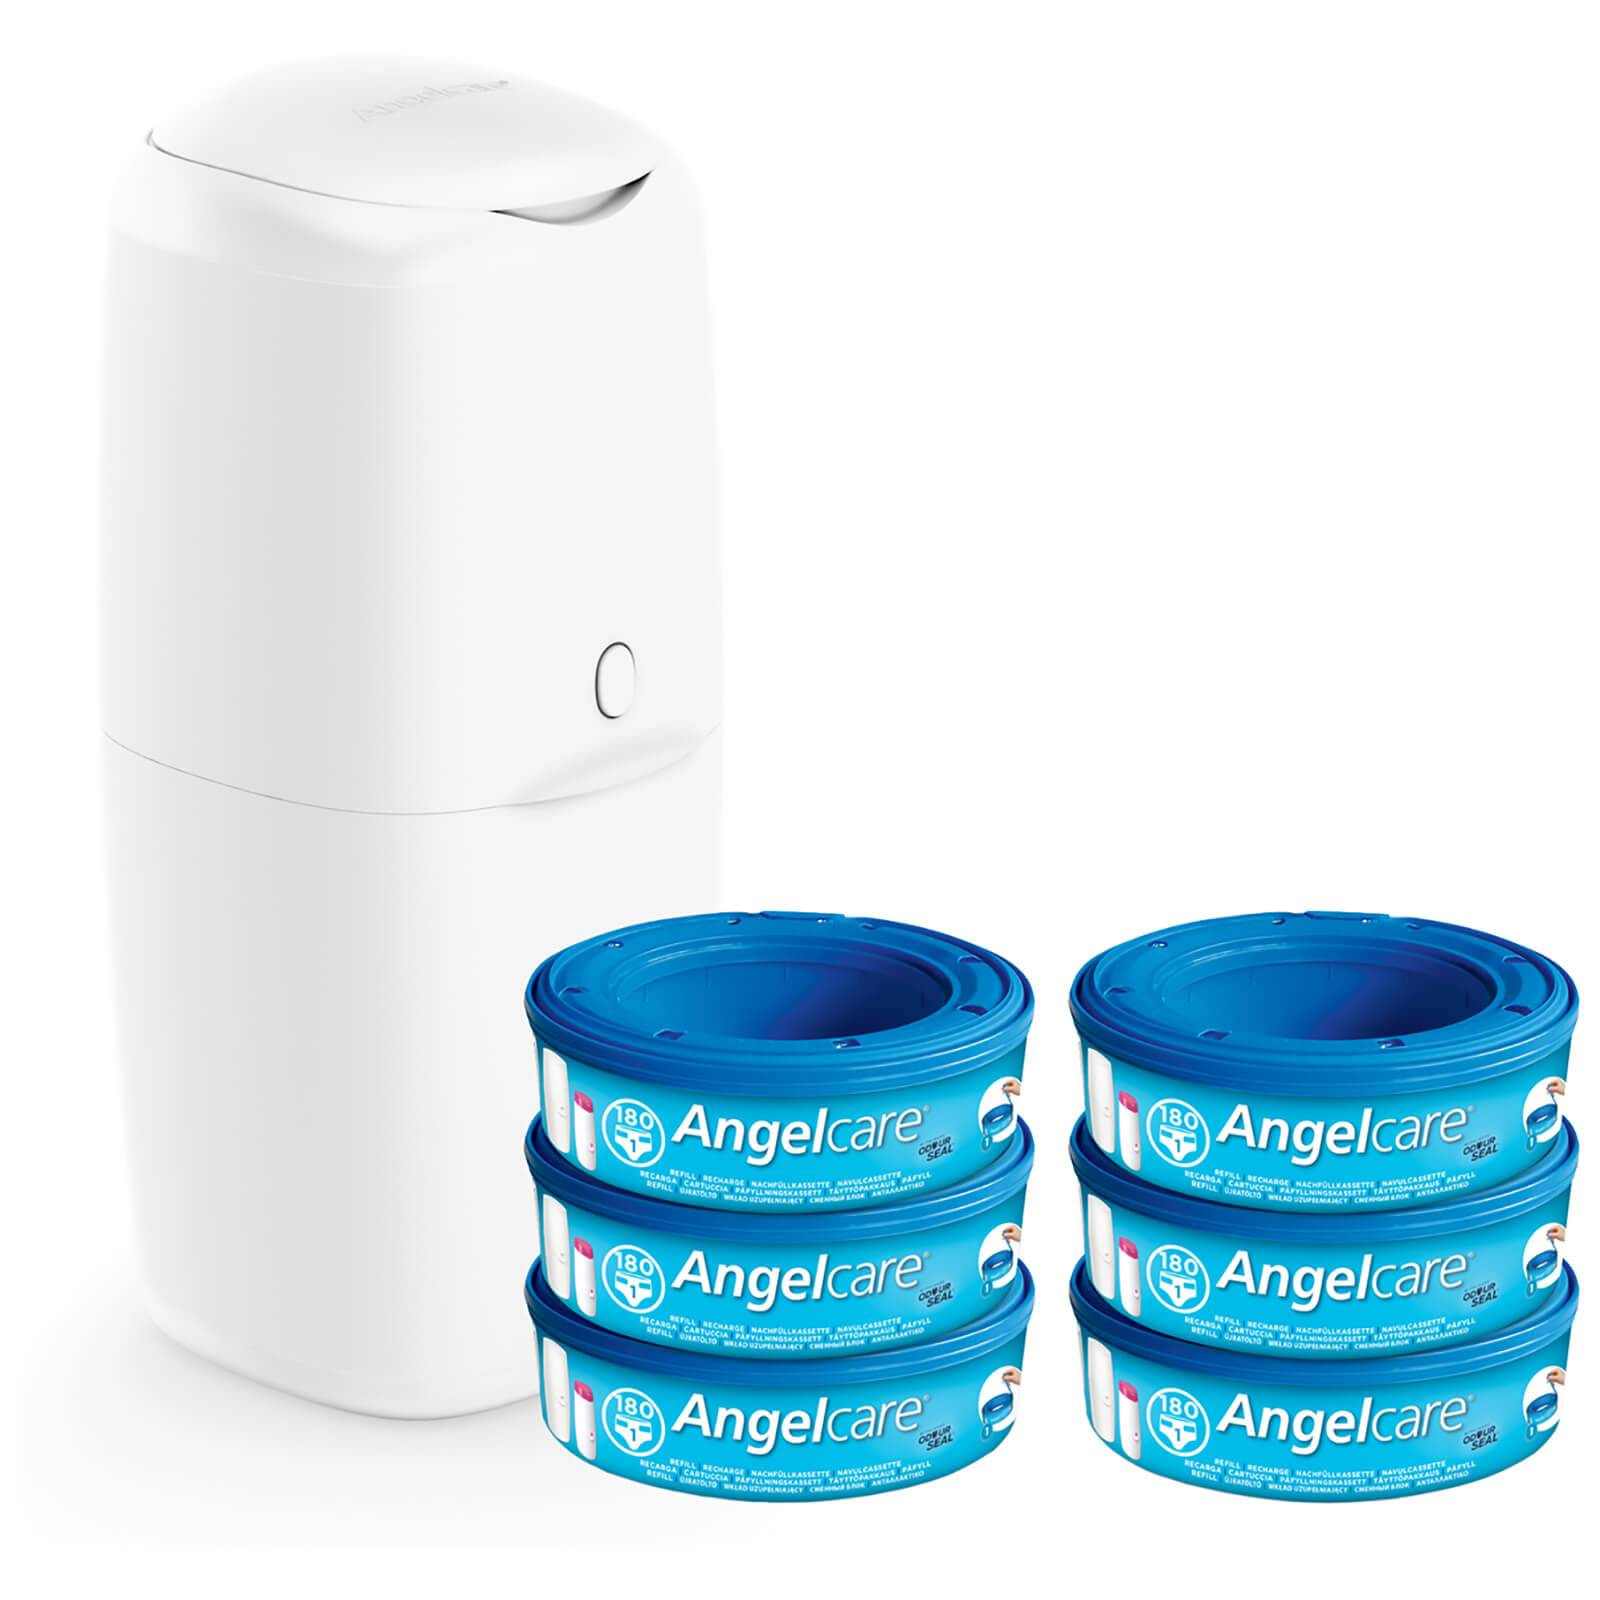 Angelcare Nappy Disposal System